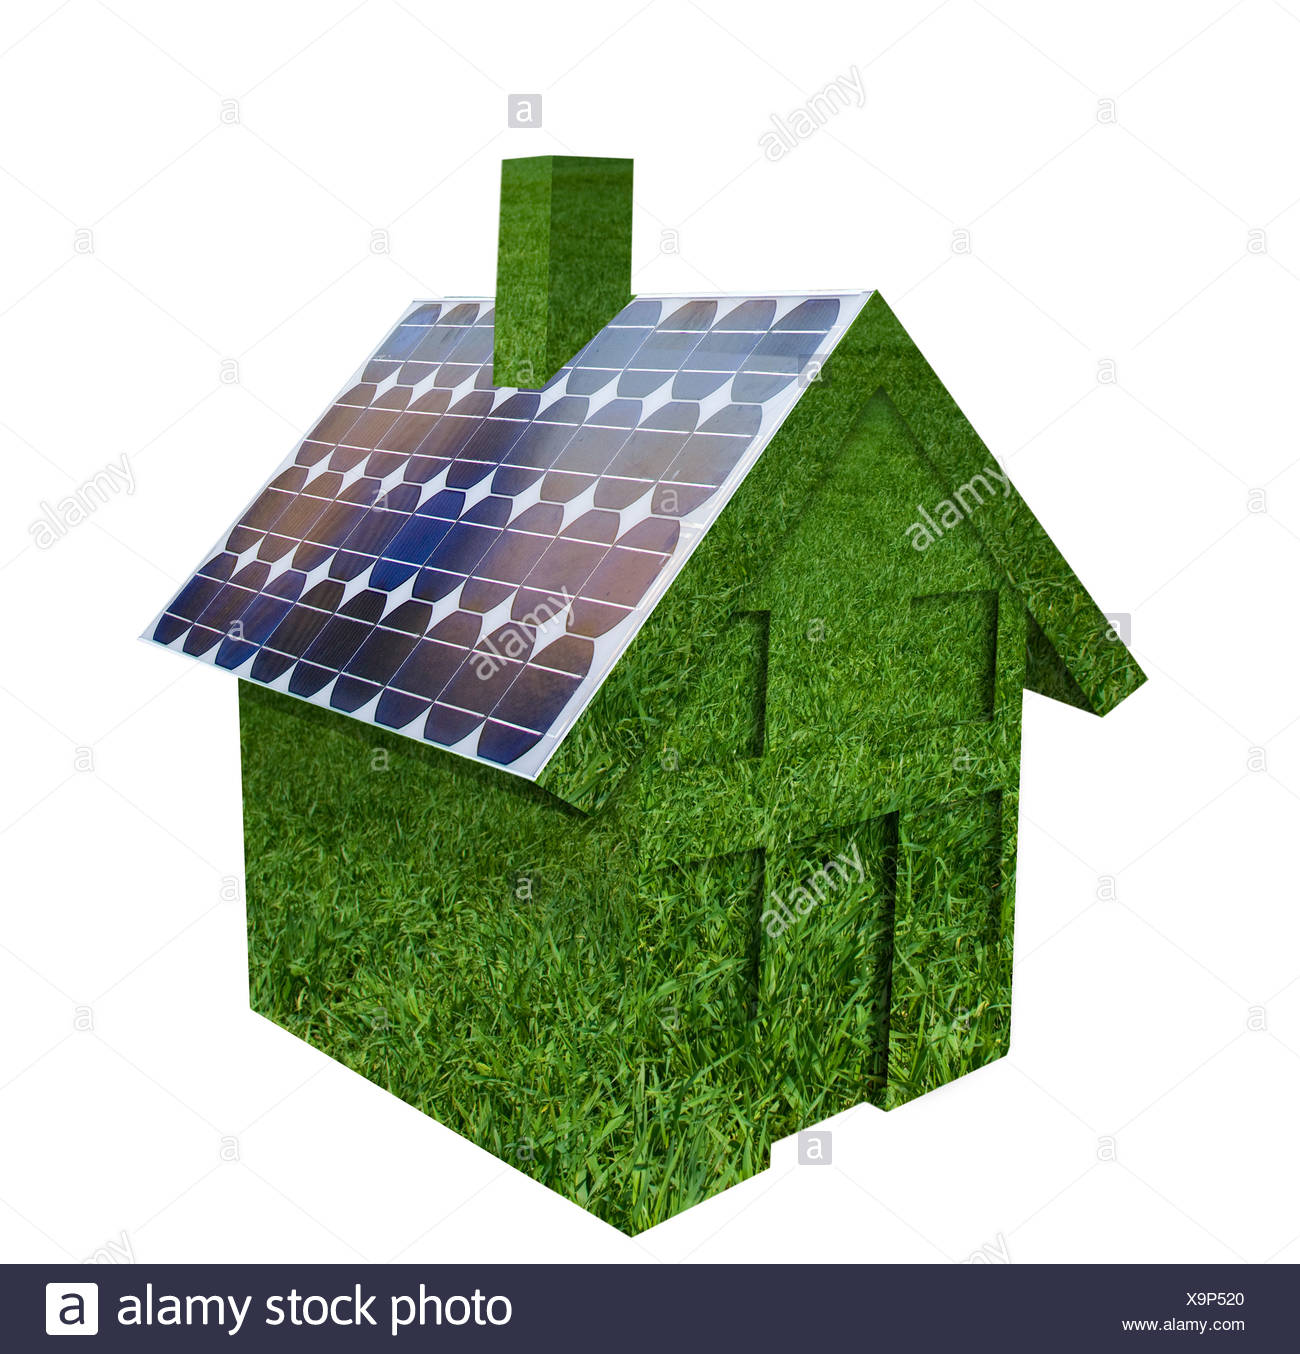 House made out of green grass with solar panels on roof - Stock Image